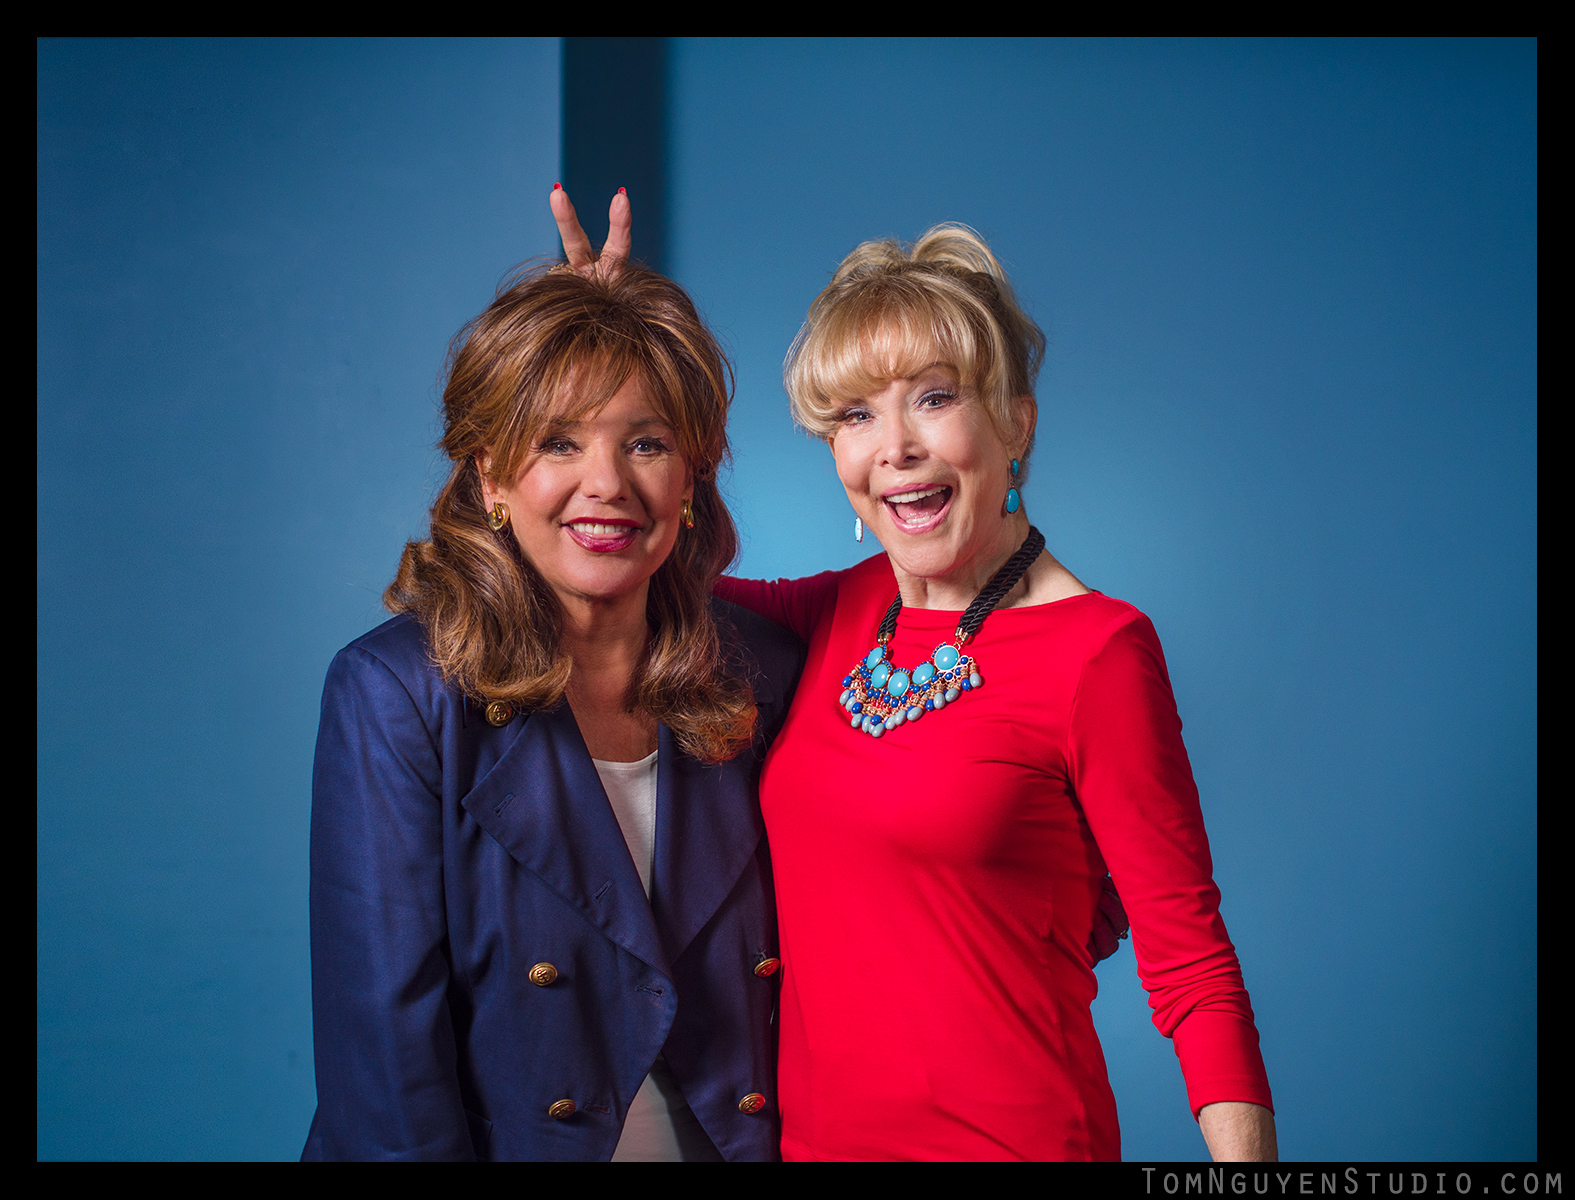 Gorgeous as ever: Dawn Wells (Mary Ann from Gilligan's Island) and Barbara Eden (I Dream of Jeannie).